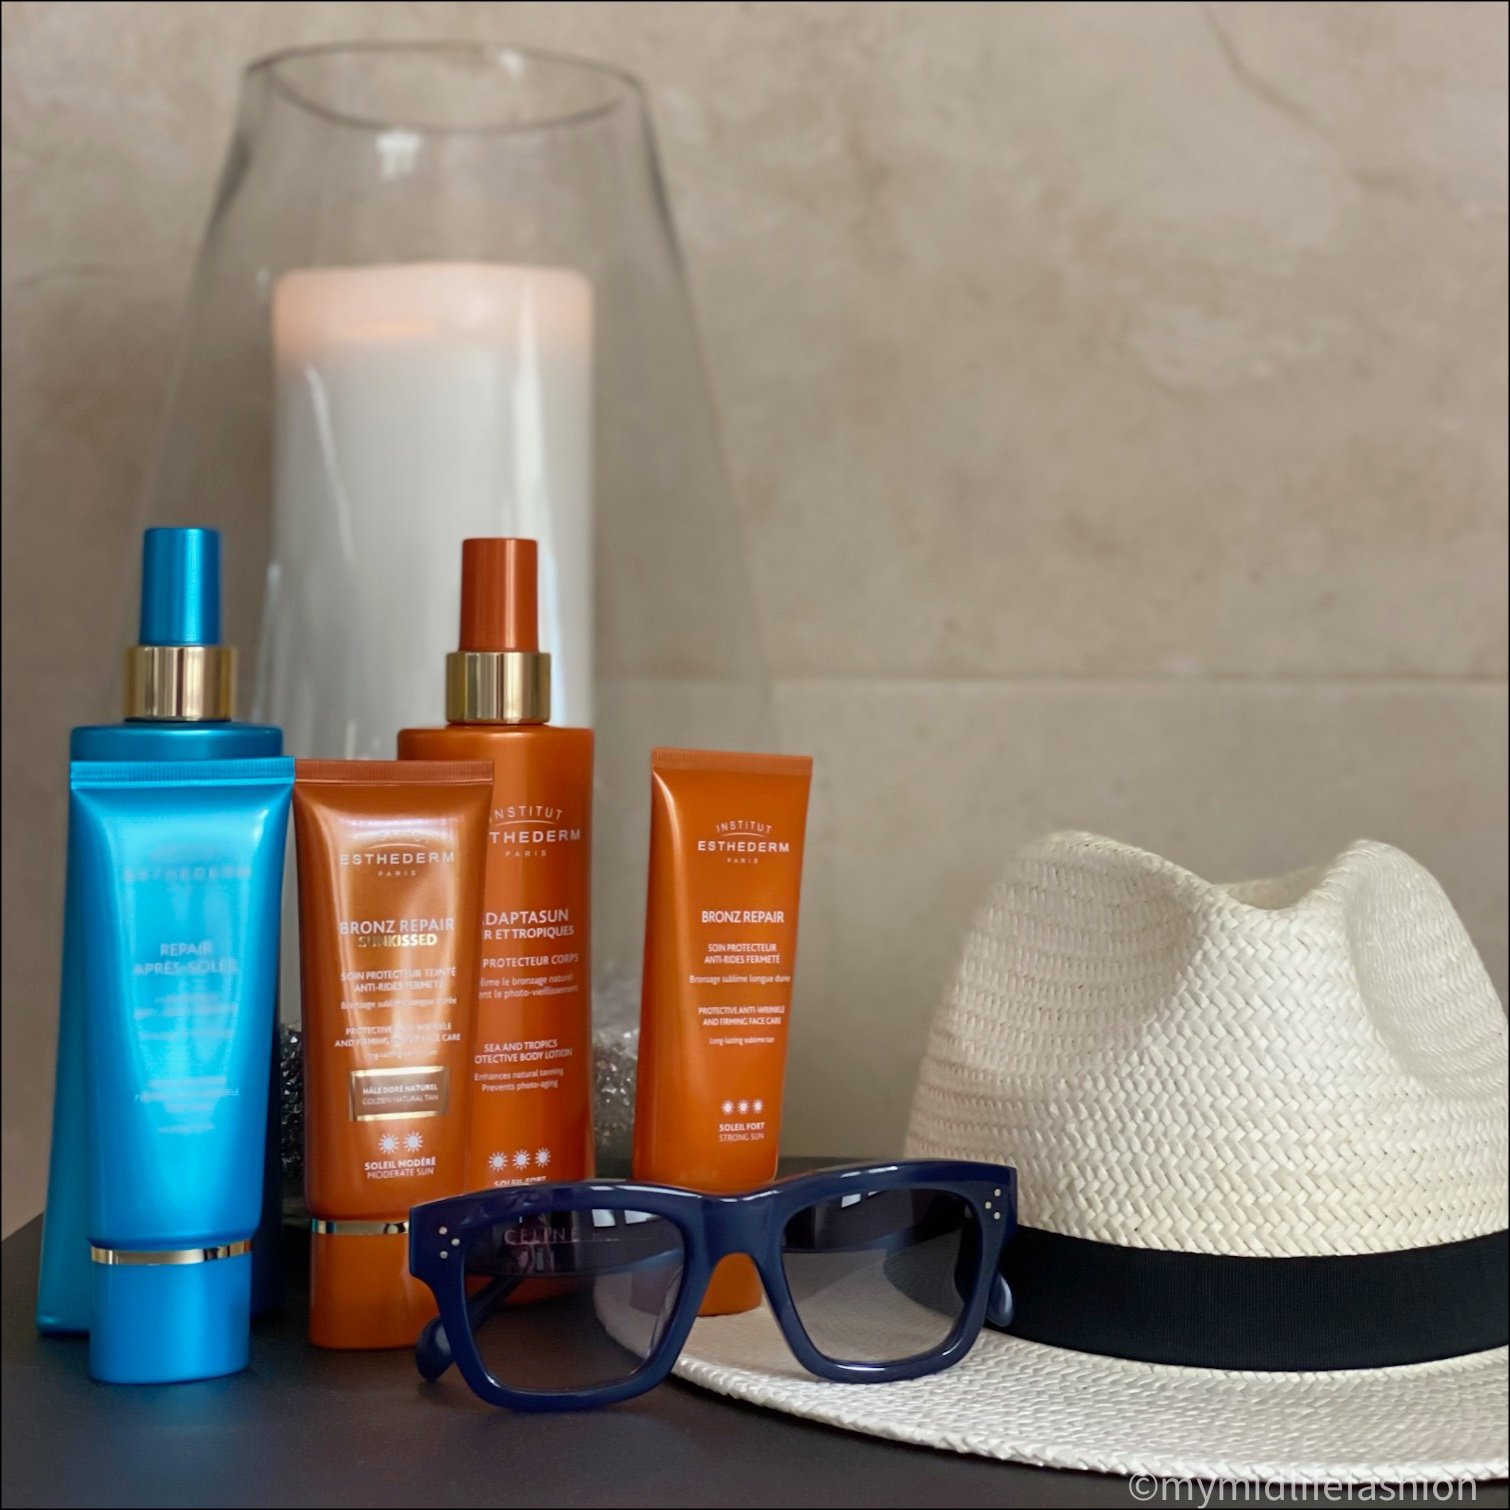 my midlife fashion, institut esthederm, institut esthederm after sun face cream cream, institut esthederm tan prolonging lotion, institut esthederm bronze repair sun kissed, institut esthederm adaptasun sea and tropics protective body lotion, institut esthederm bronze repair